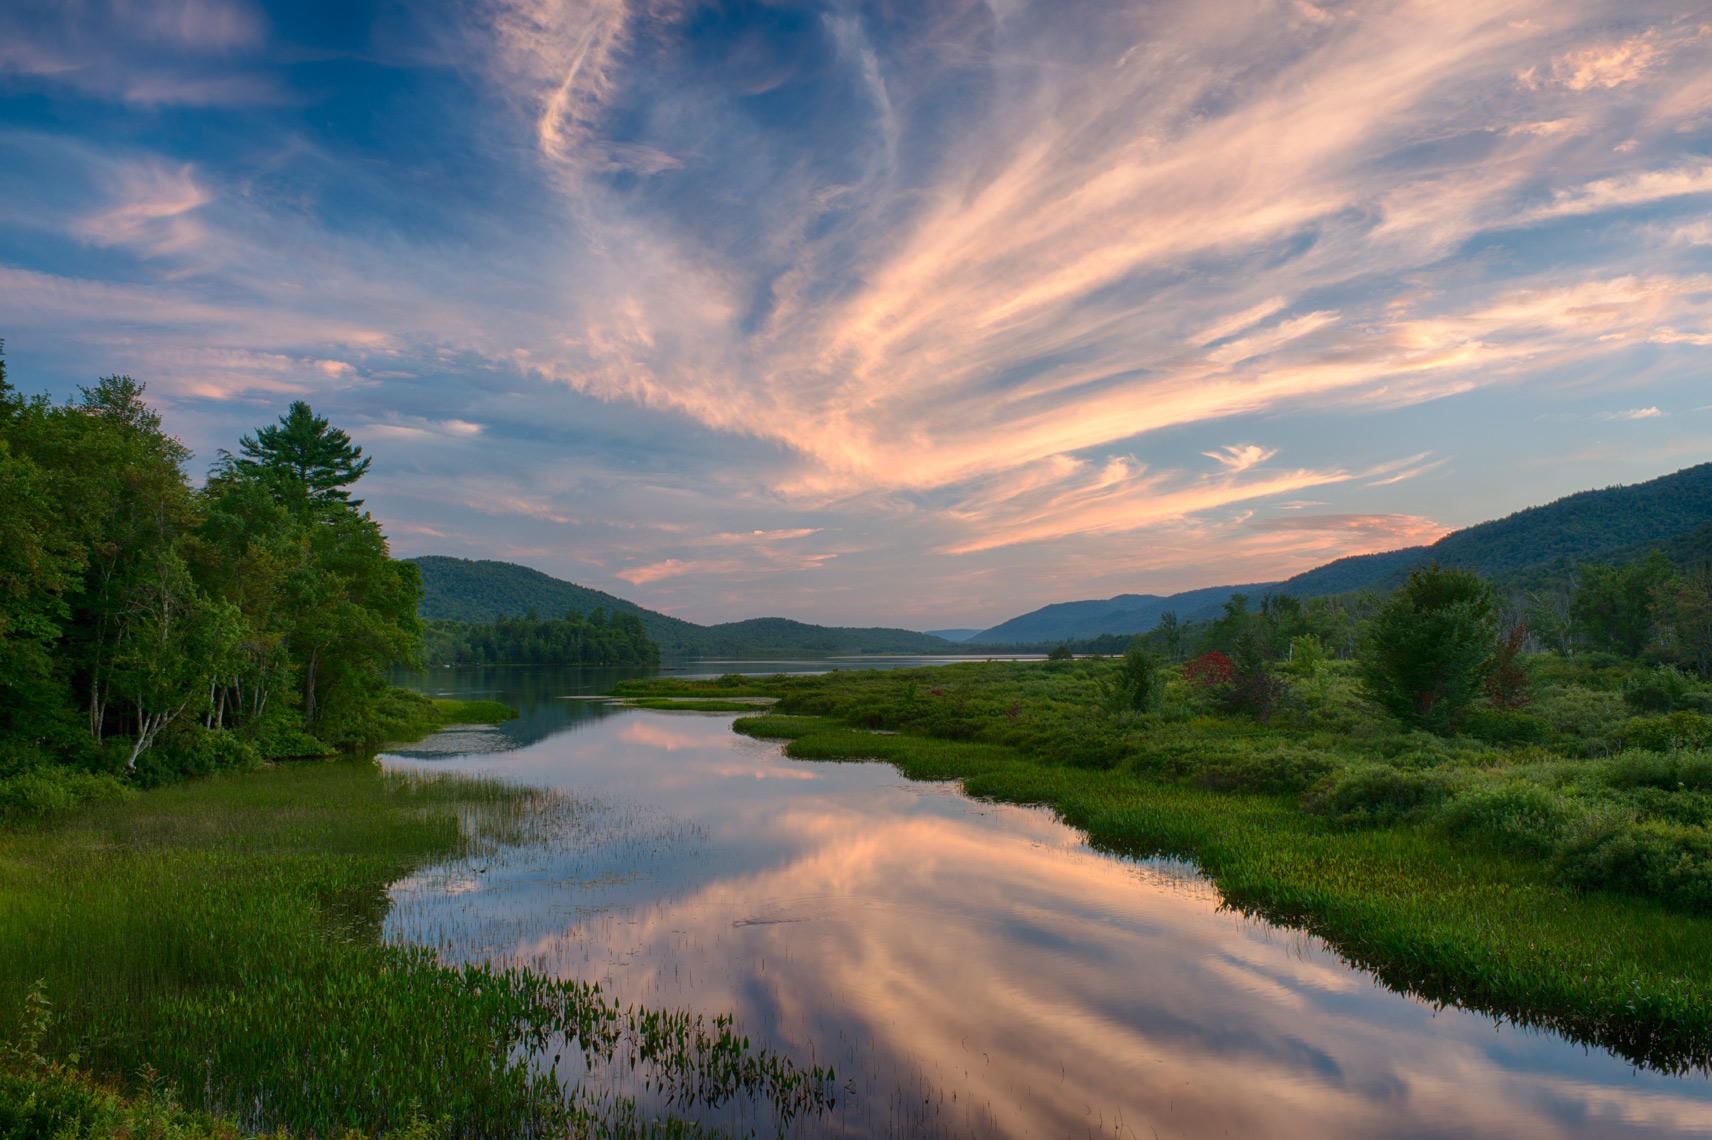 Lewey Lake Outlet on a Summer Evening, Adirondack Mountains, New York State